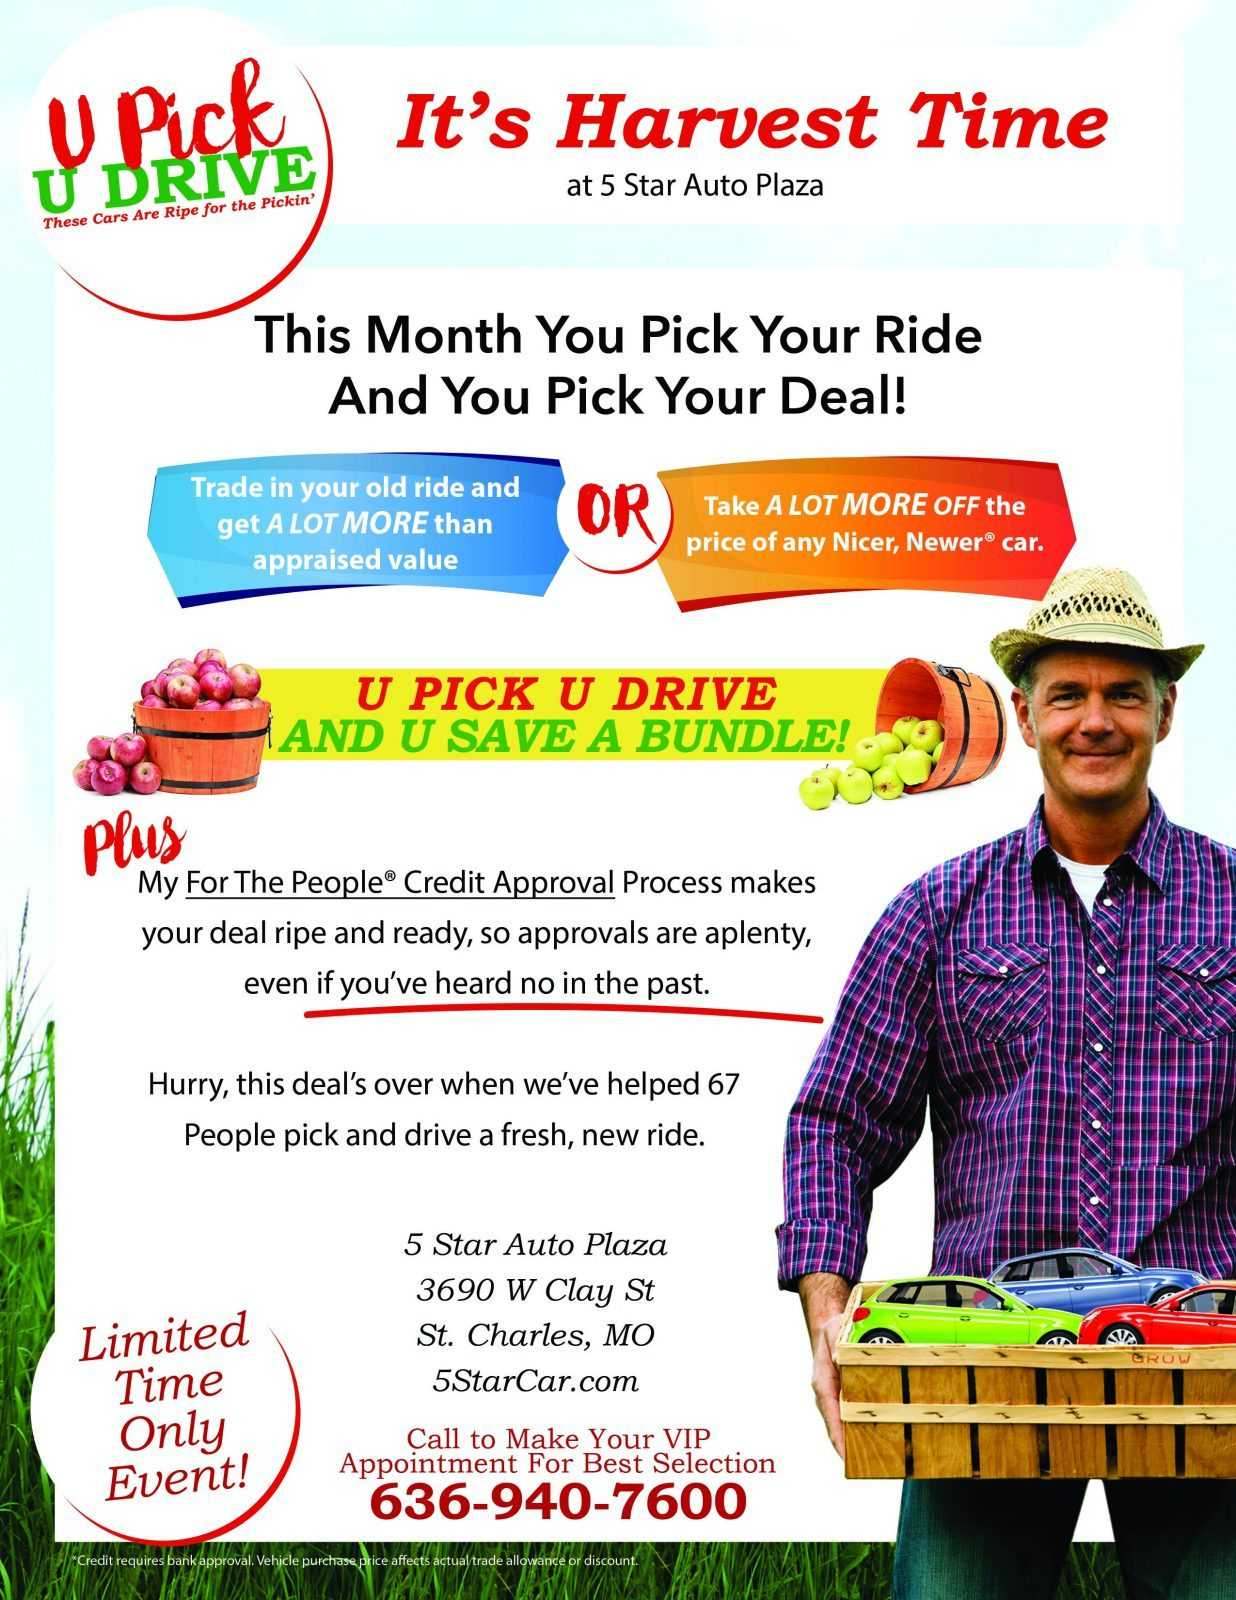 U Pick U Drive at 5 Star Auto Plaza!